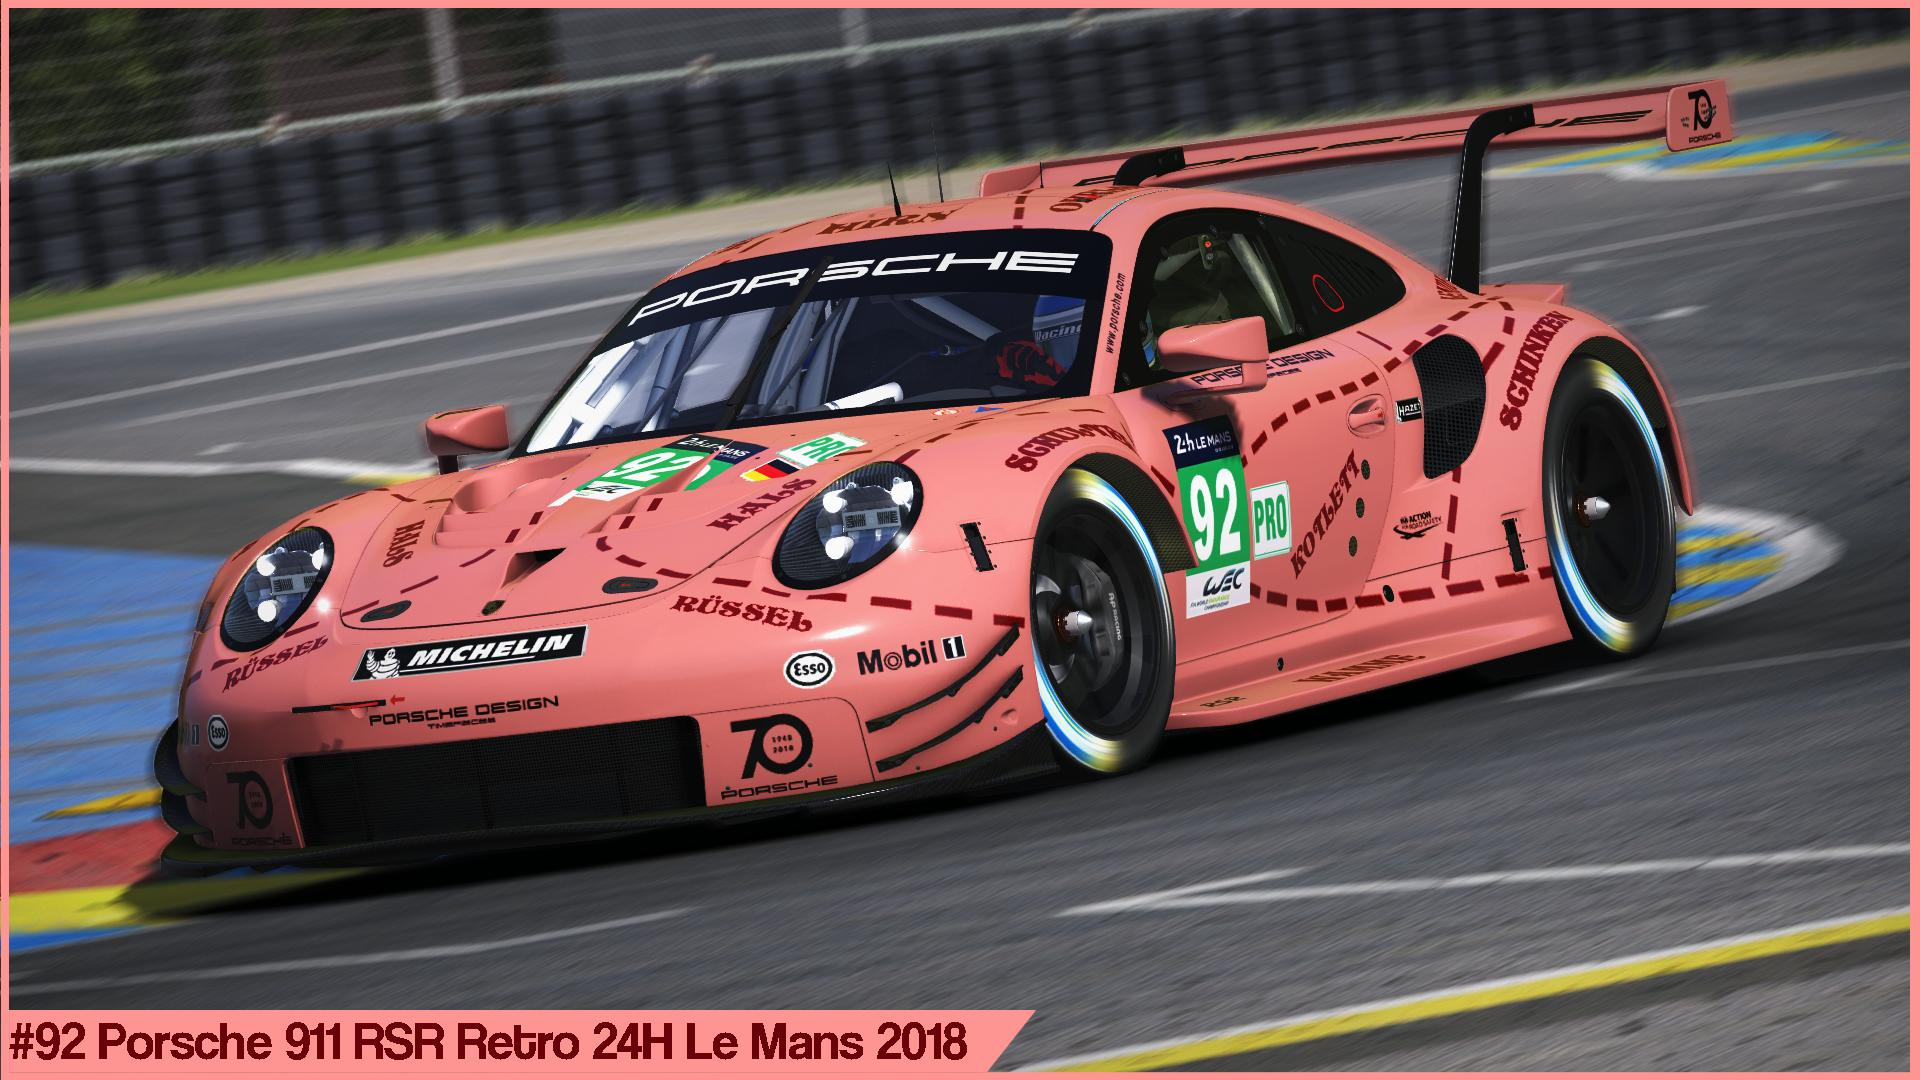 92 porsche retro 24h le mans 2018 by sergio hernando trading paints. Black Bedroom Furniture Sets. Home Design Ideas